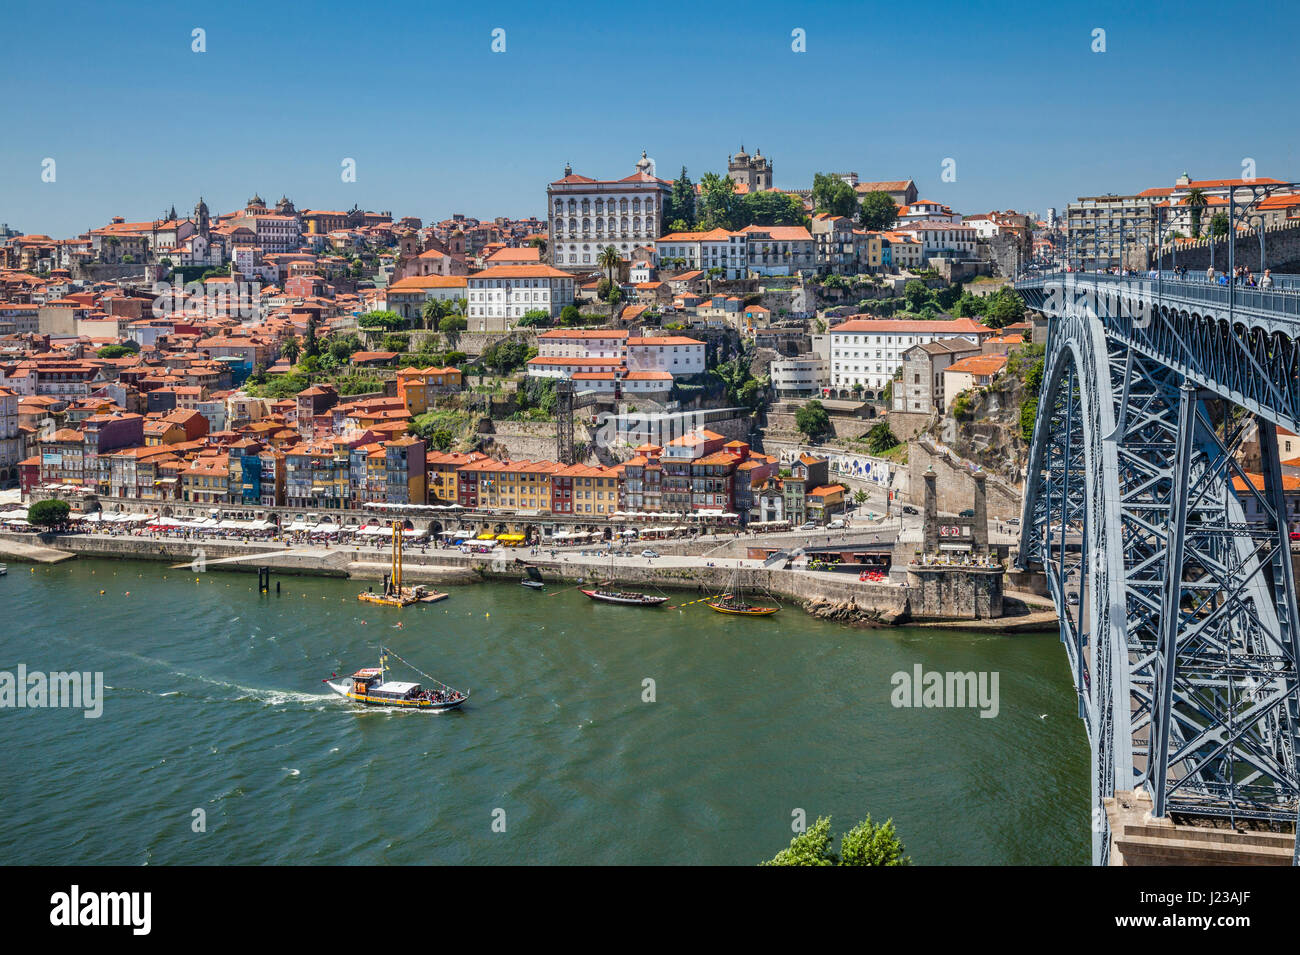 porto river douro portugal stockfotos porto river douro portugal bilder seite 3 alamy. Black Bedroom Furniture Sets. Home Design Ideas